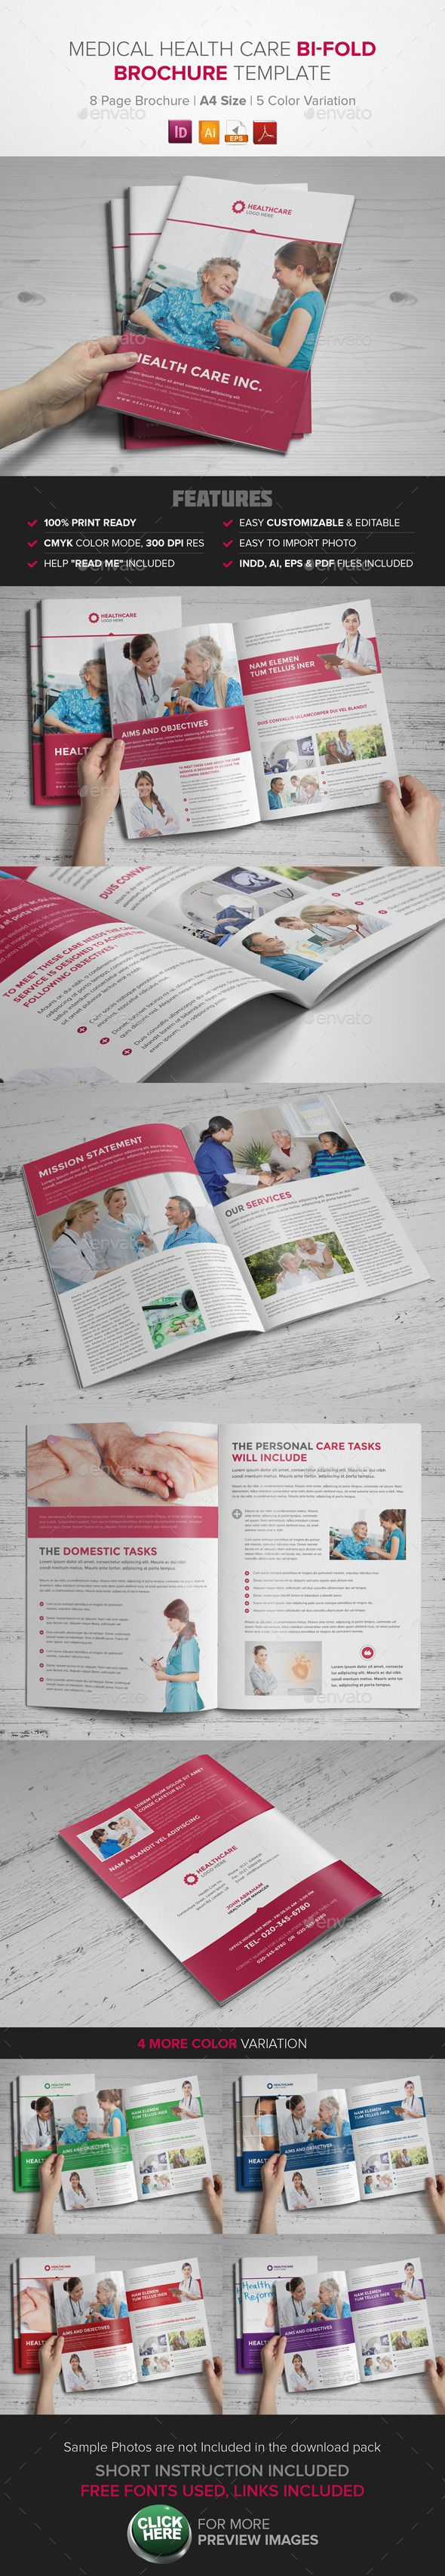 Medical Health Care Bifold Brochure - InDesign